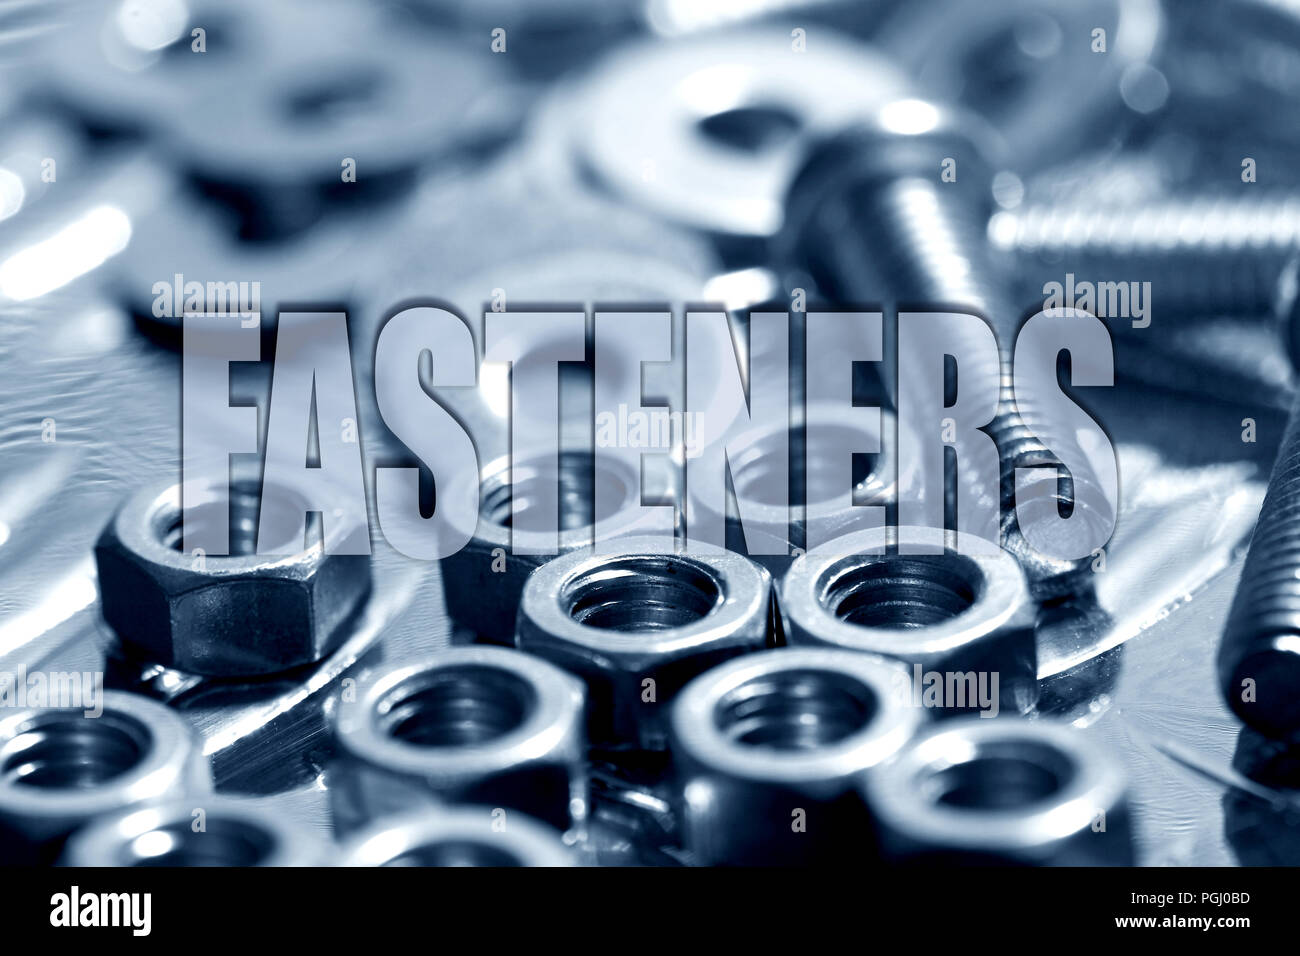 Fasteners written on top of nuts and bolts in blue background - Stock Image